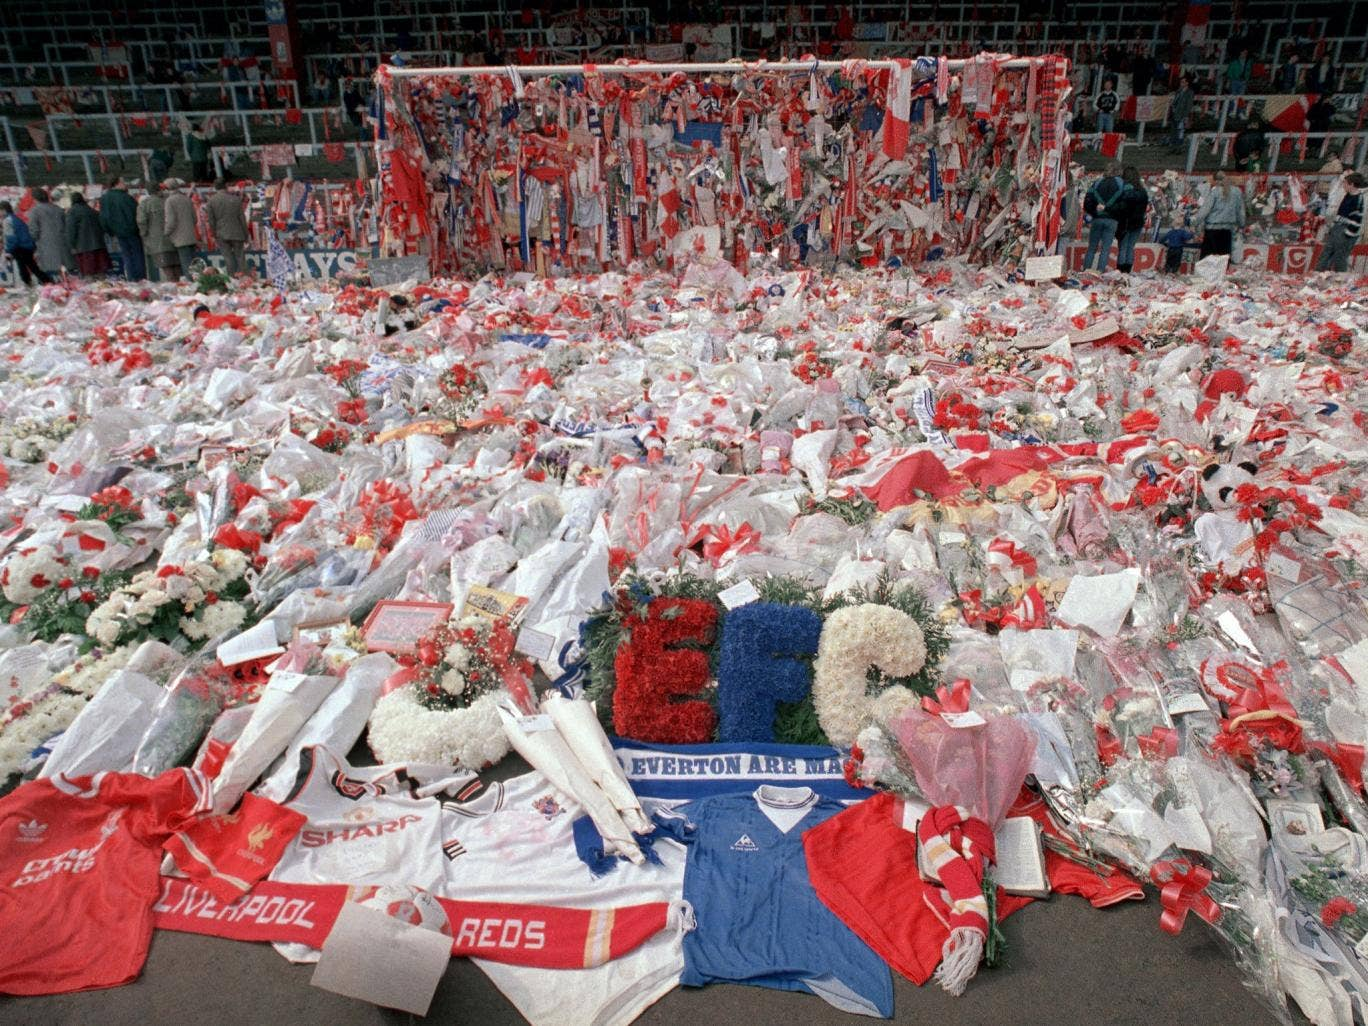 Floral tributes are placed by soccer fans at the 'Kop' end of Anfield Stadium in Liverpool on 17 April 1989 after the Hillsborough tragedy